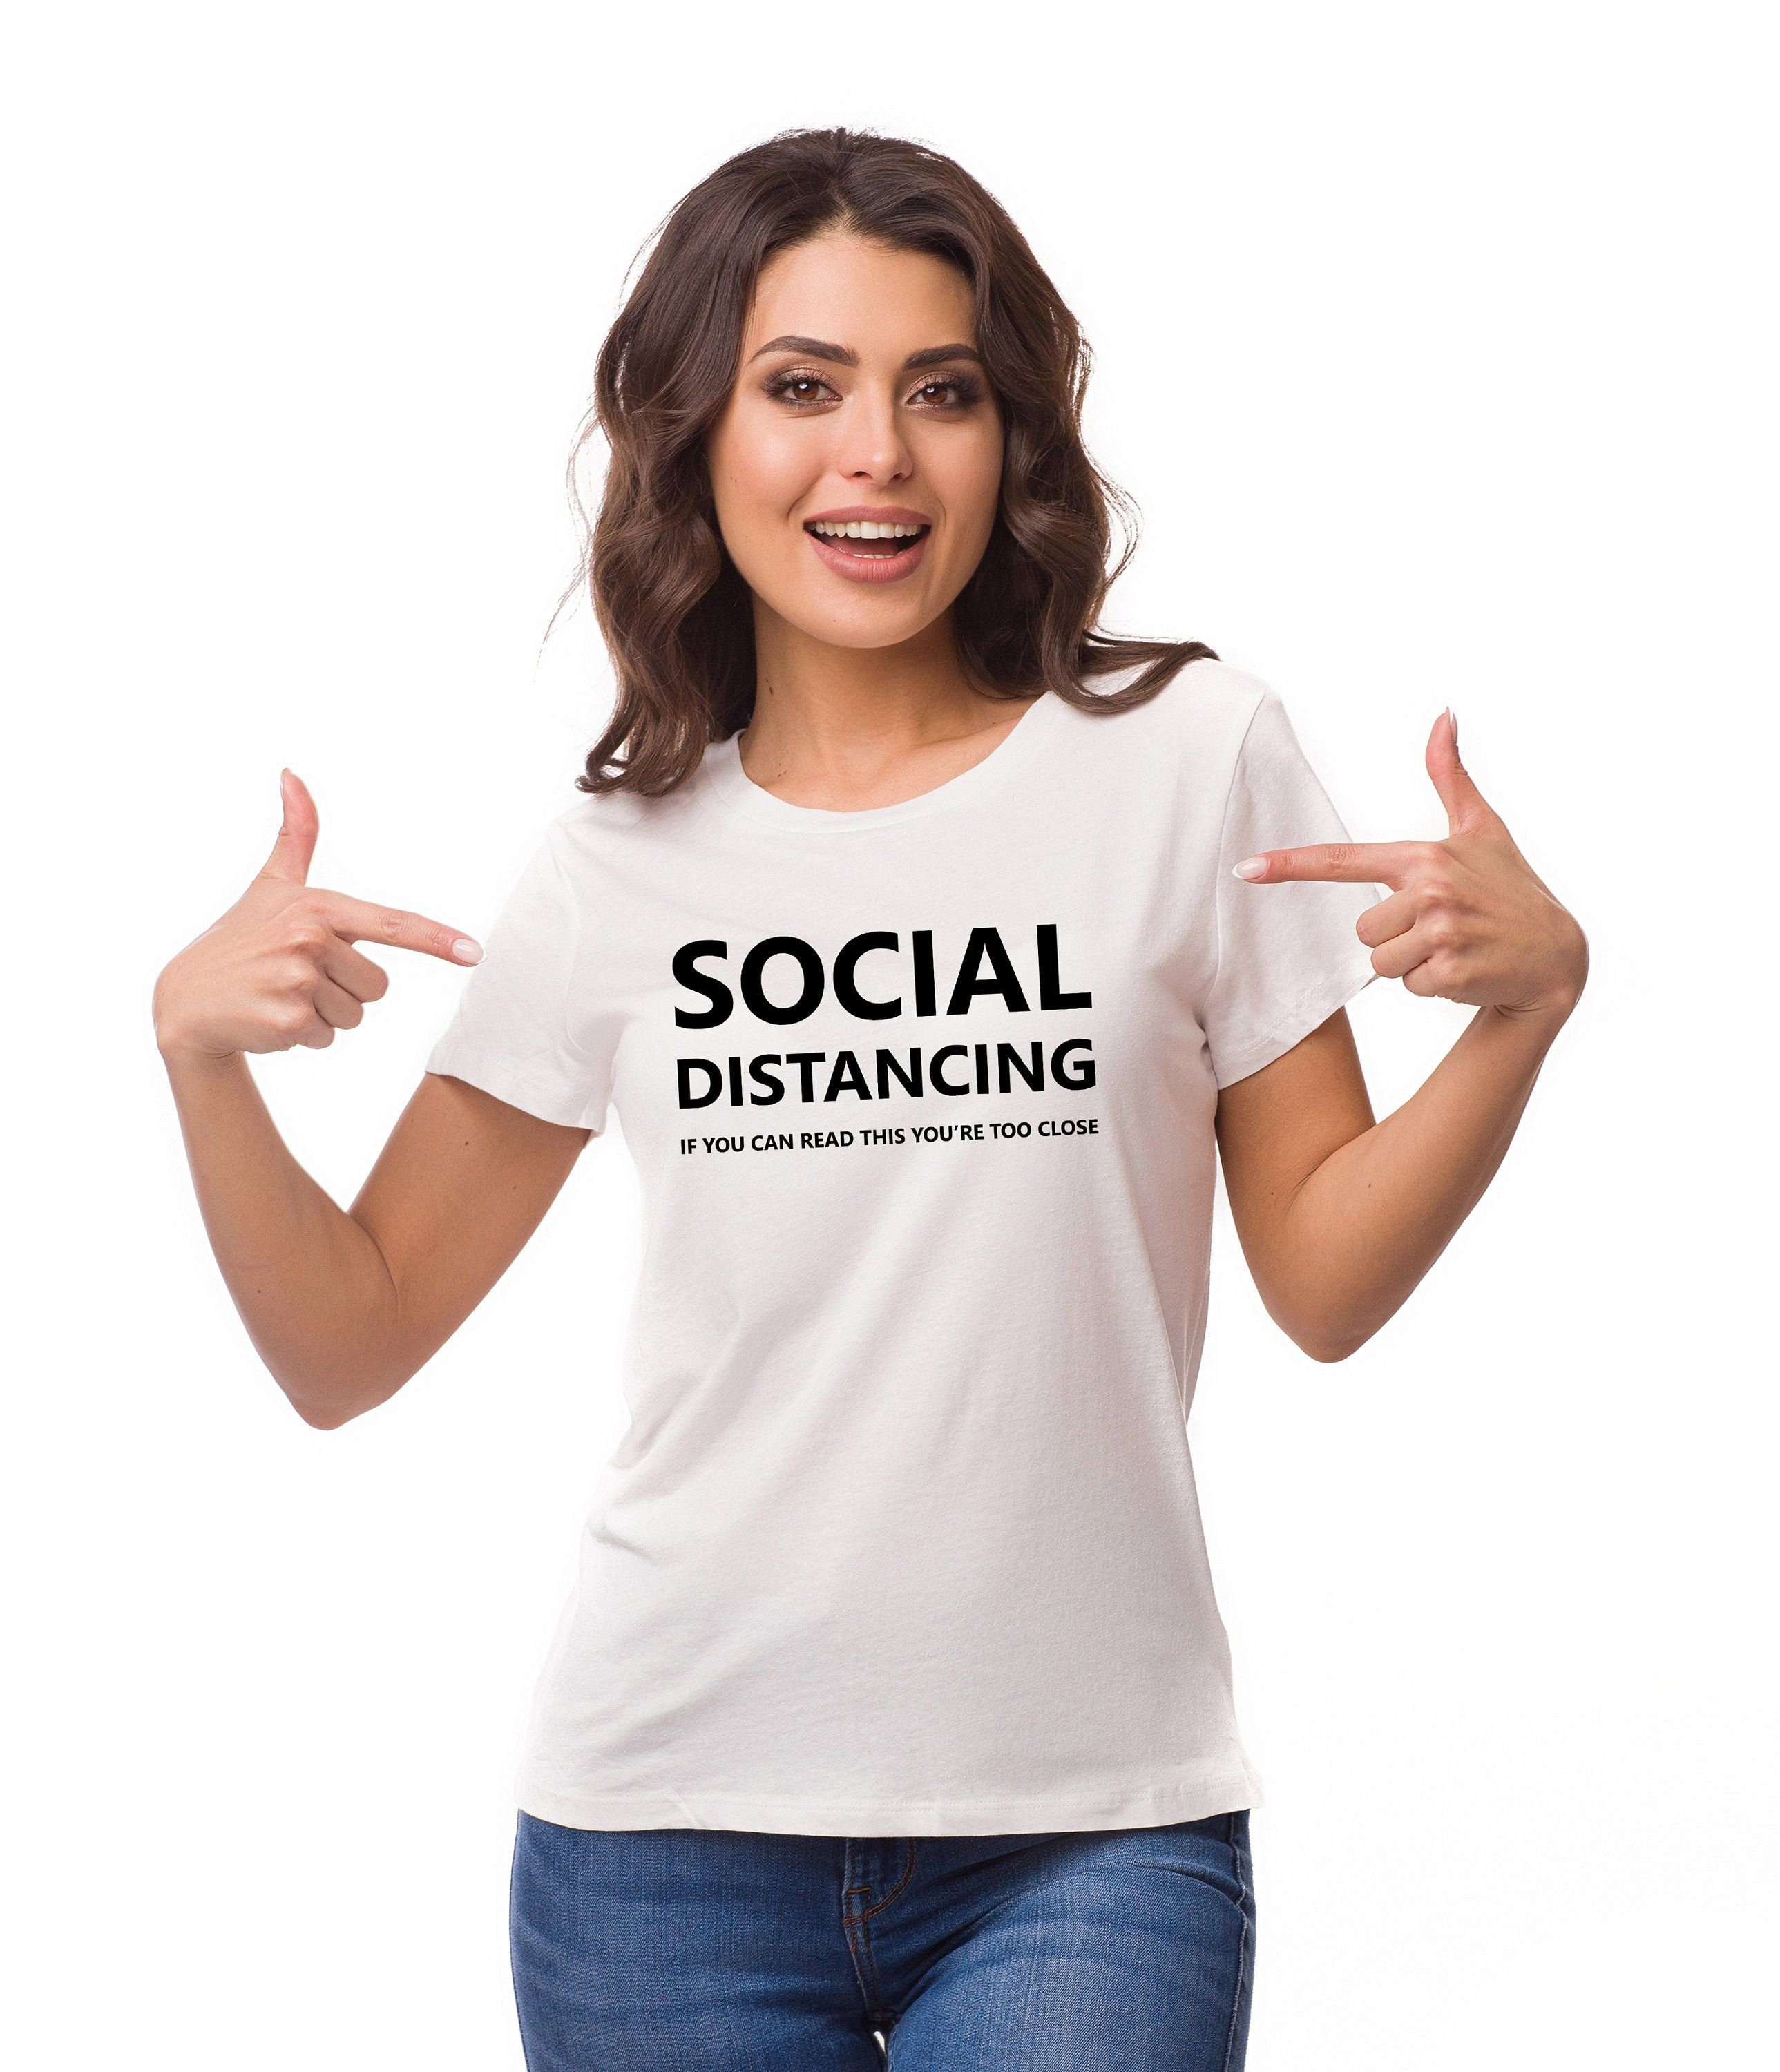 SOCIAL DISTANCING Letter Women Summer T Shirt YOU'RE TOO CLOSE Funny Print Casual Tees Tops Aesthetic Streetwear Ropa De Mujer